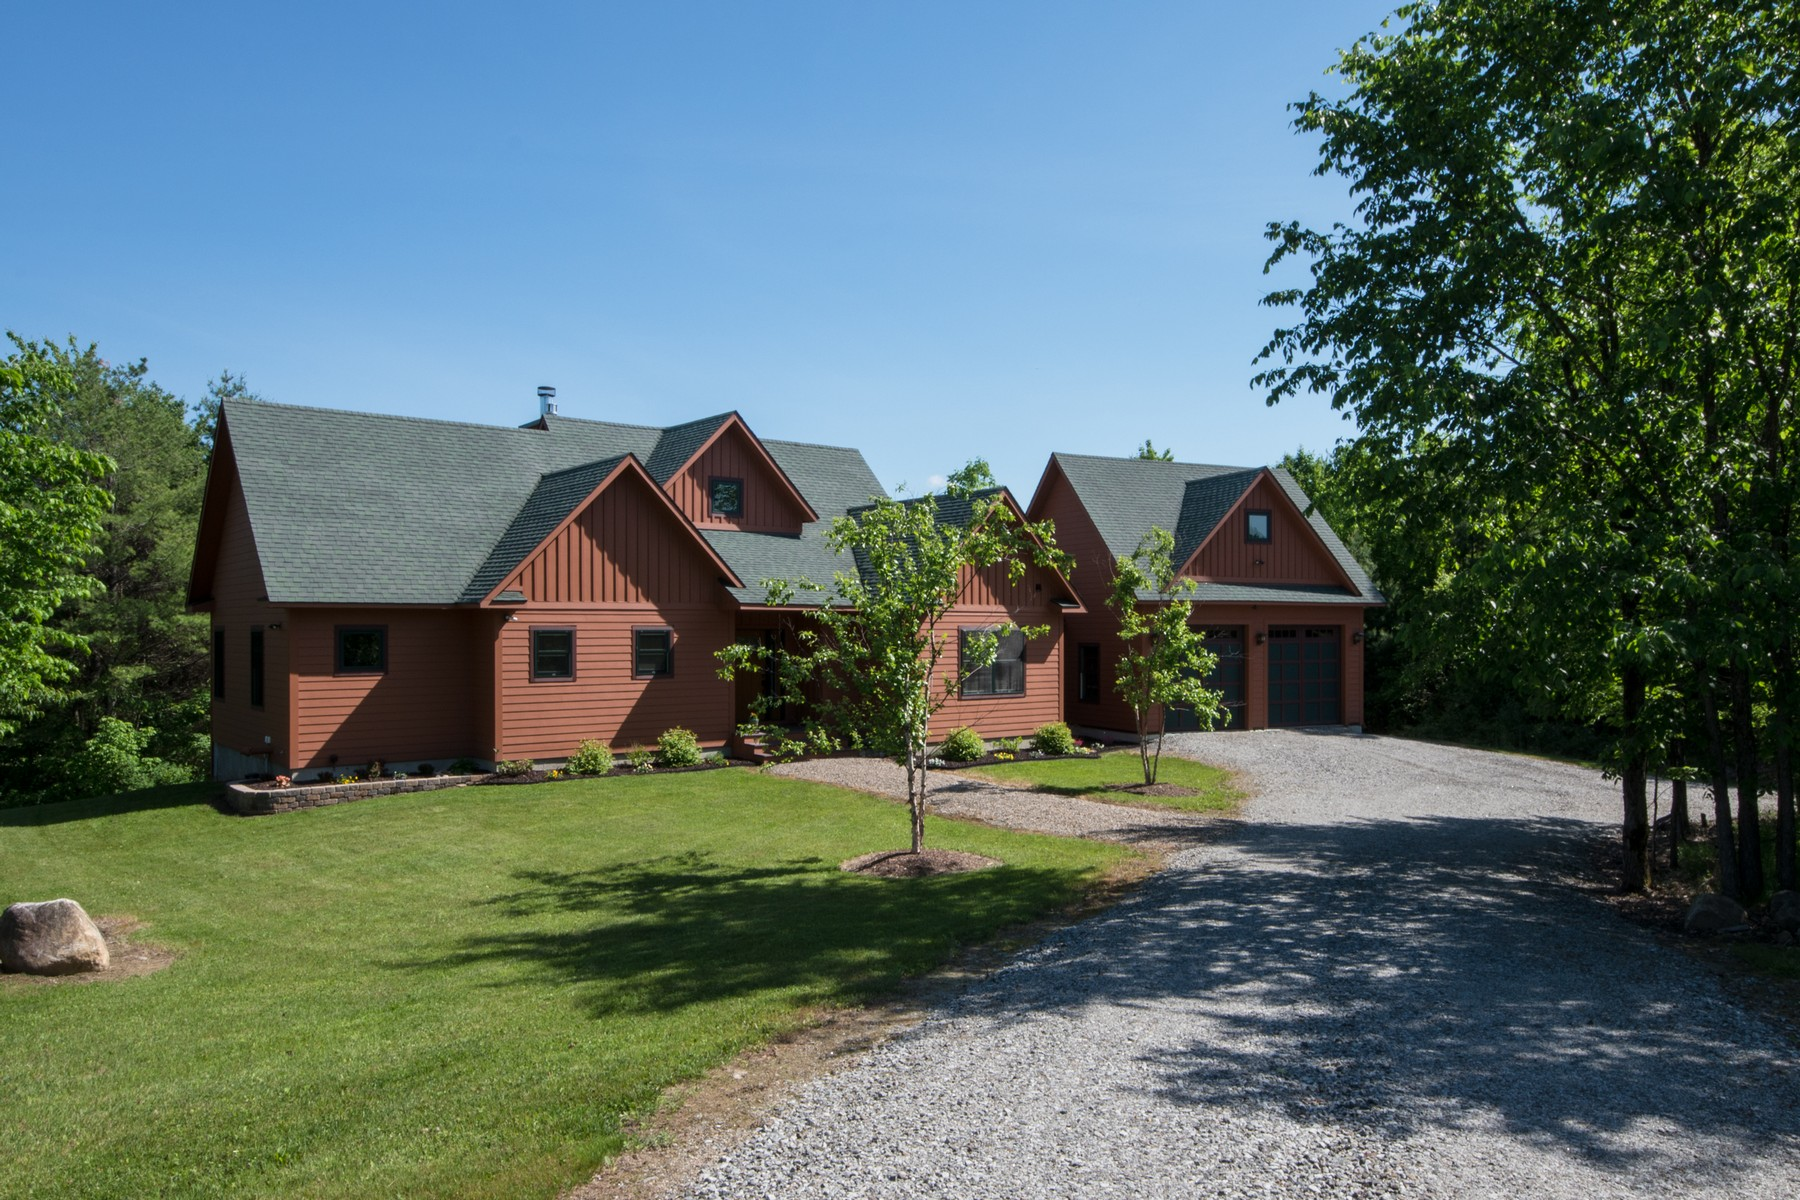 Maison unifamiliale pour l Vente à Exquisite Country Home 498 Stickney Bridge Rd Jay, New York 12941 États-Unis